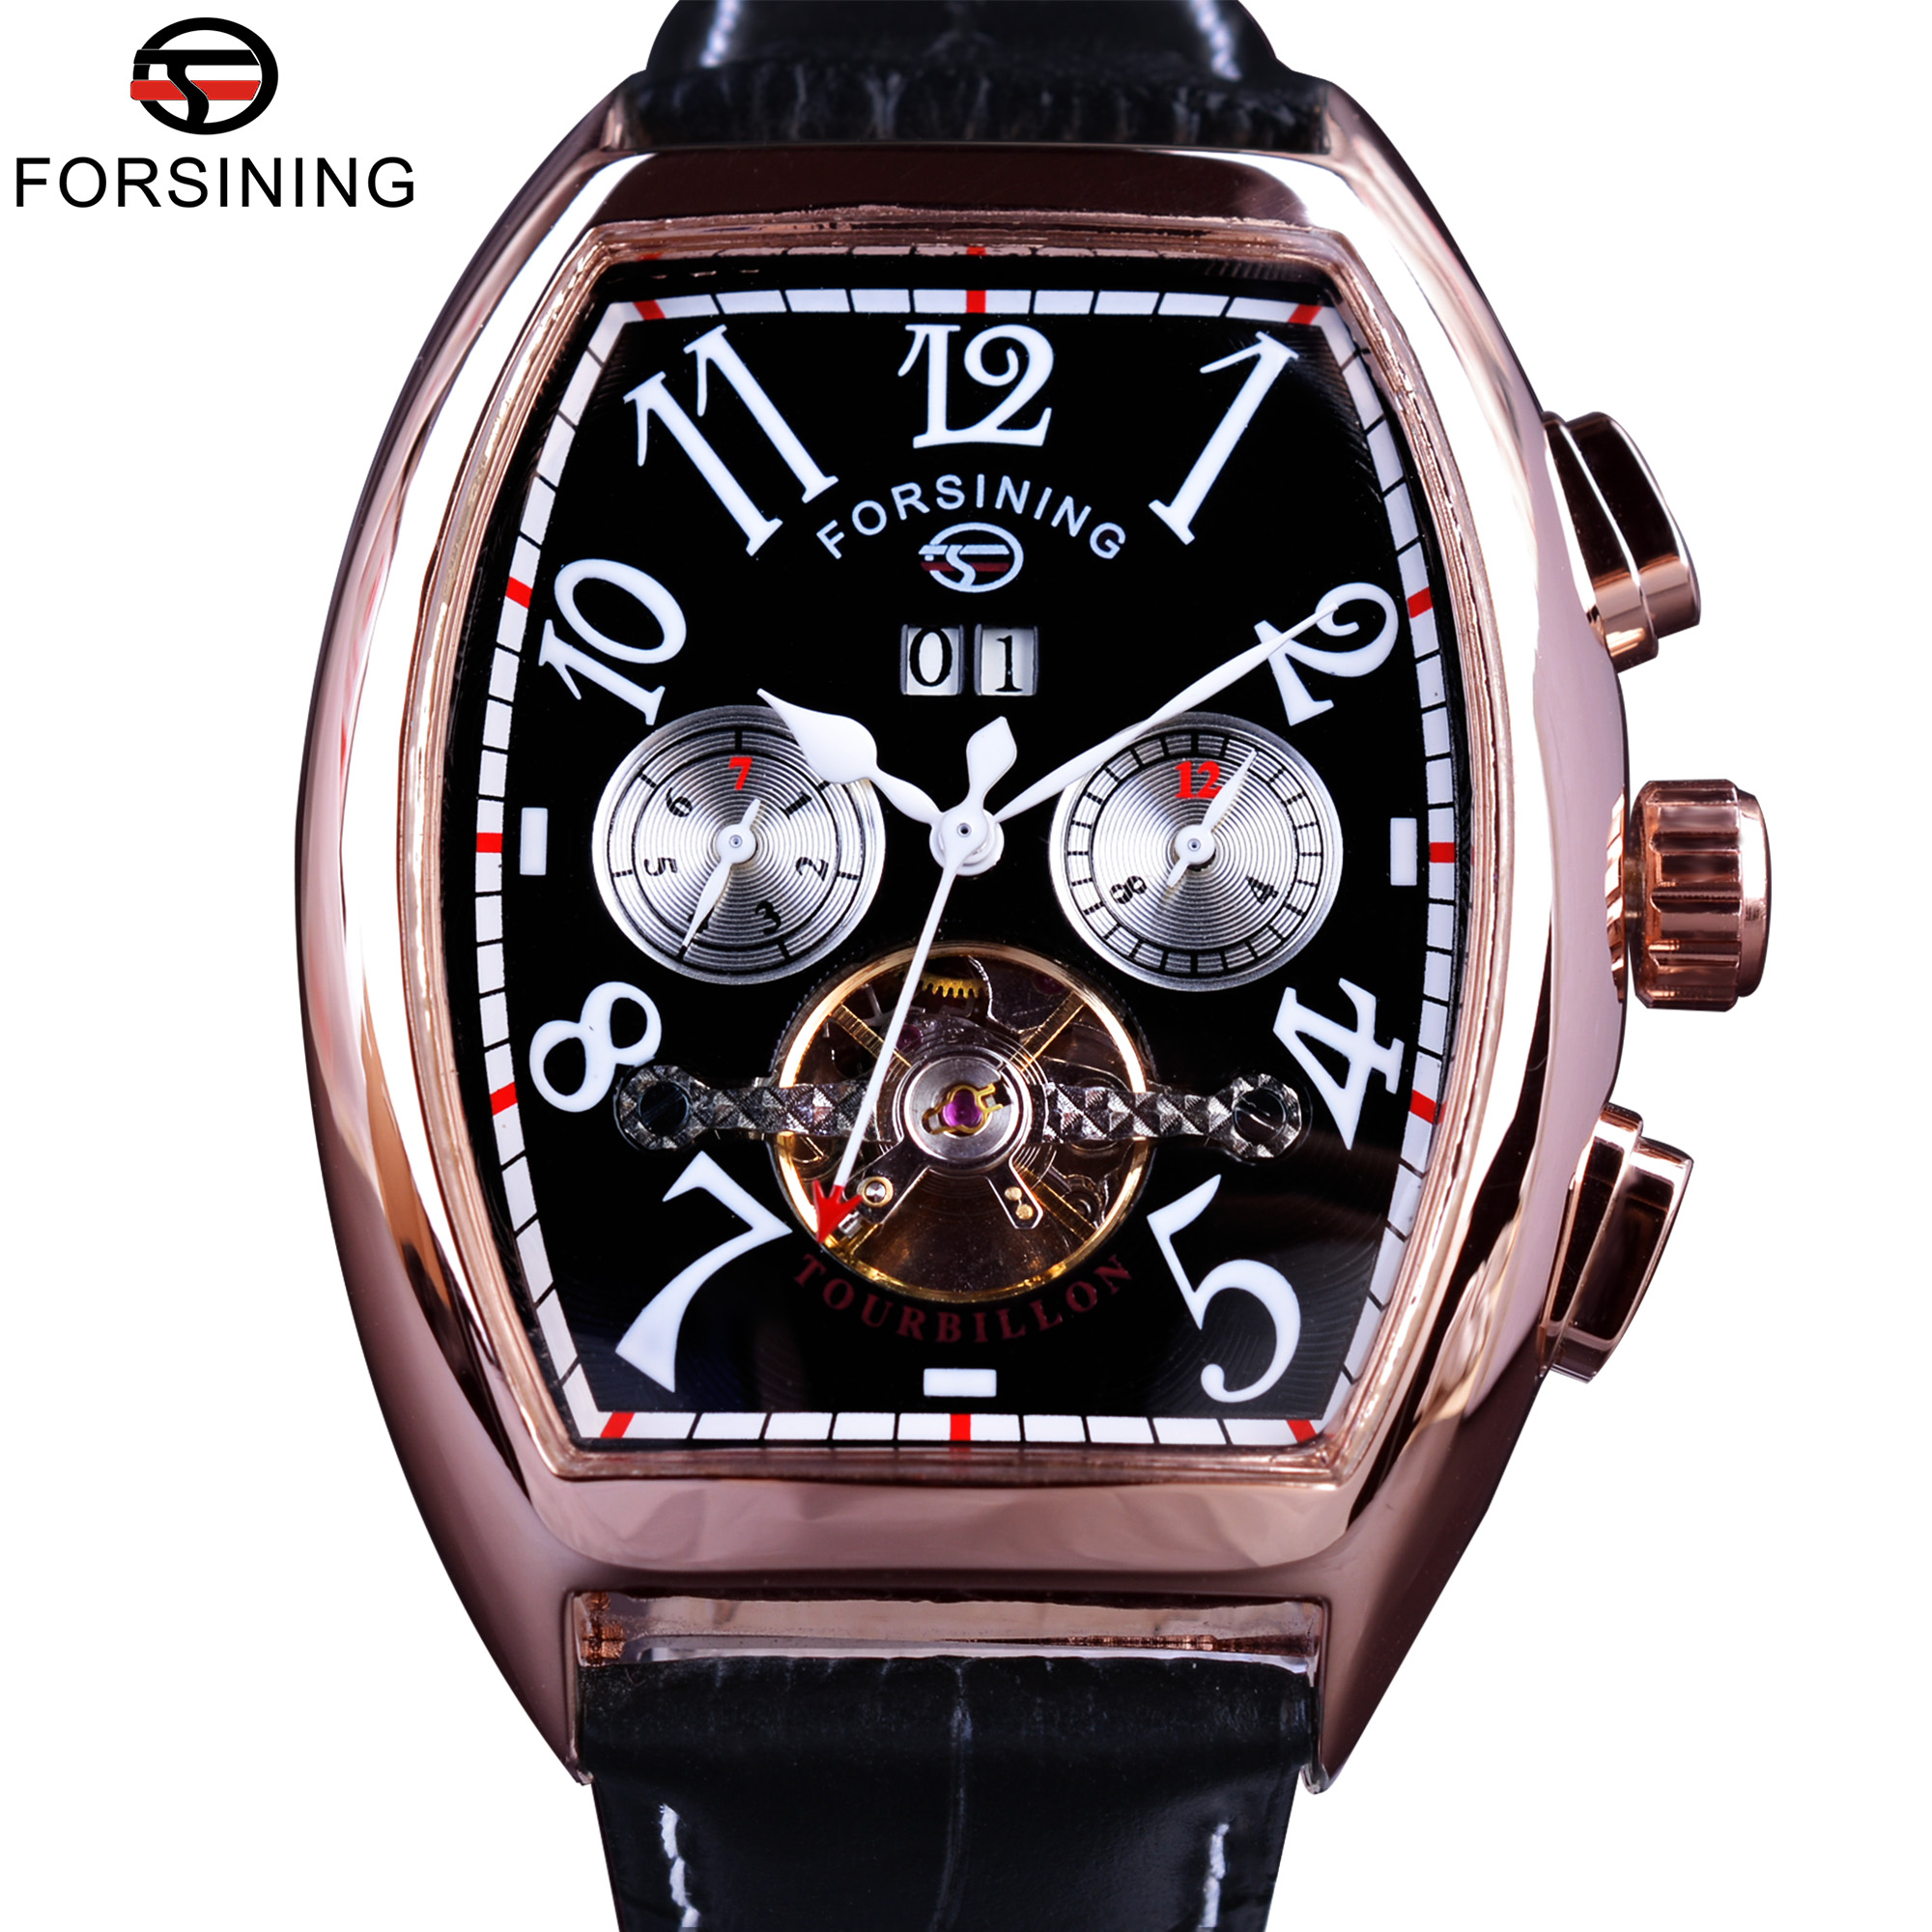 Forsining Date Month Display Rose Golden Case Mens Watches Top Brand Luxury Automatic Watch Clock Men Casual Fashion Clock Watch forsining date month display rose golden case mens watches top brand luxury automatic watch clock men casual fashion clock watch